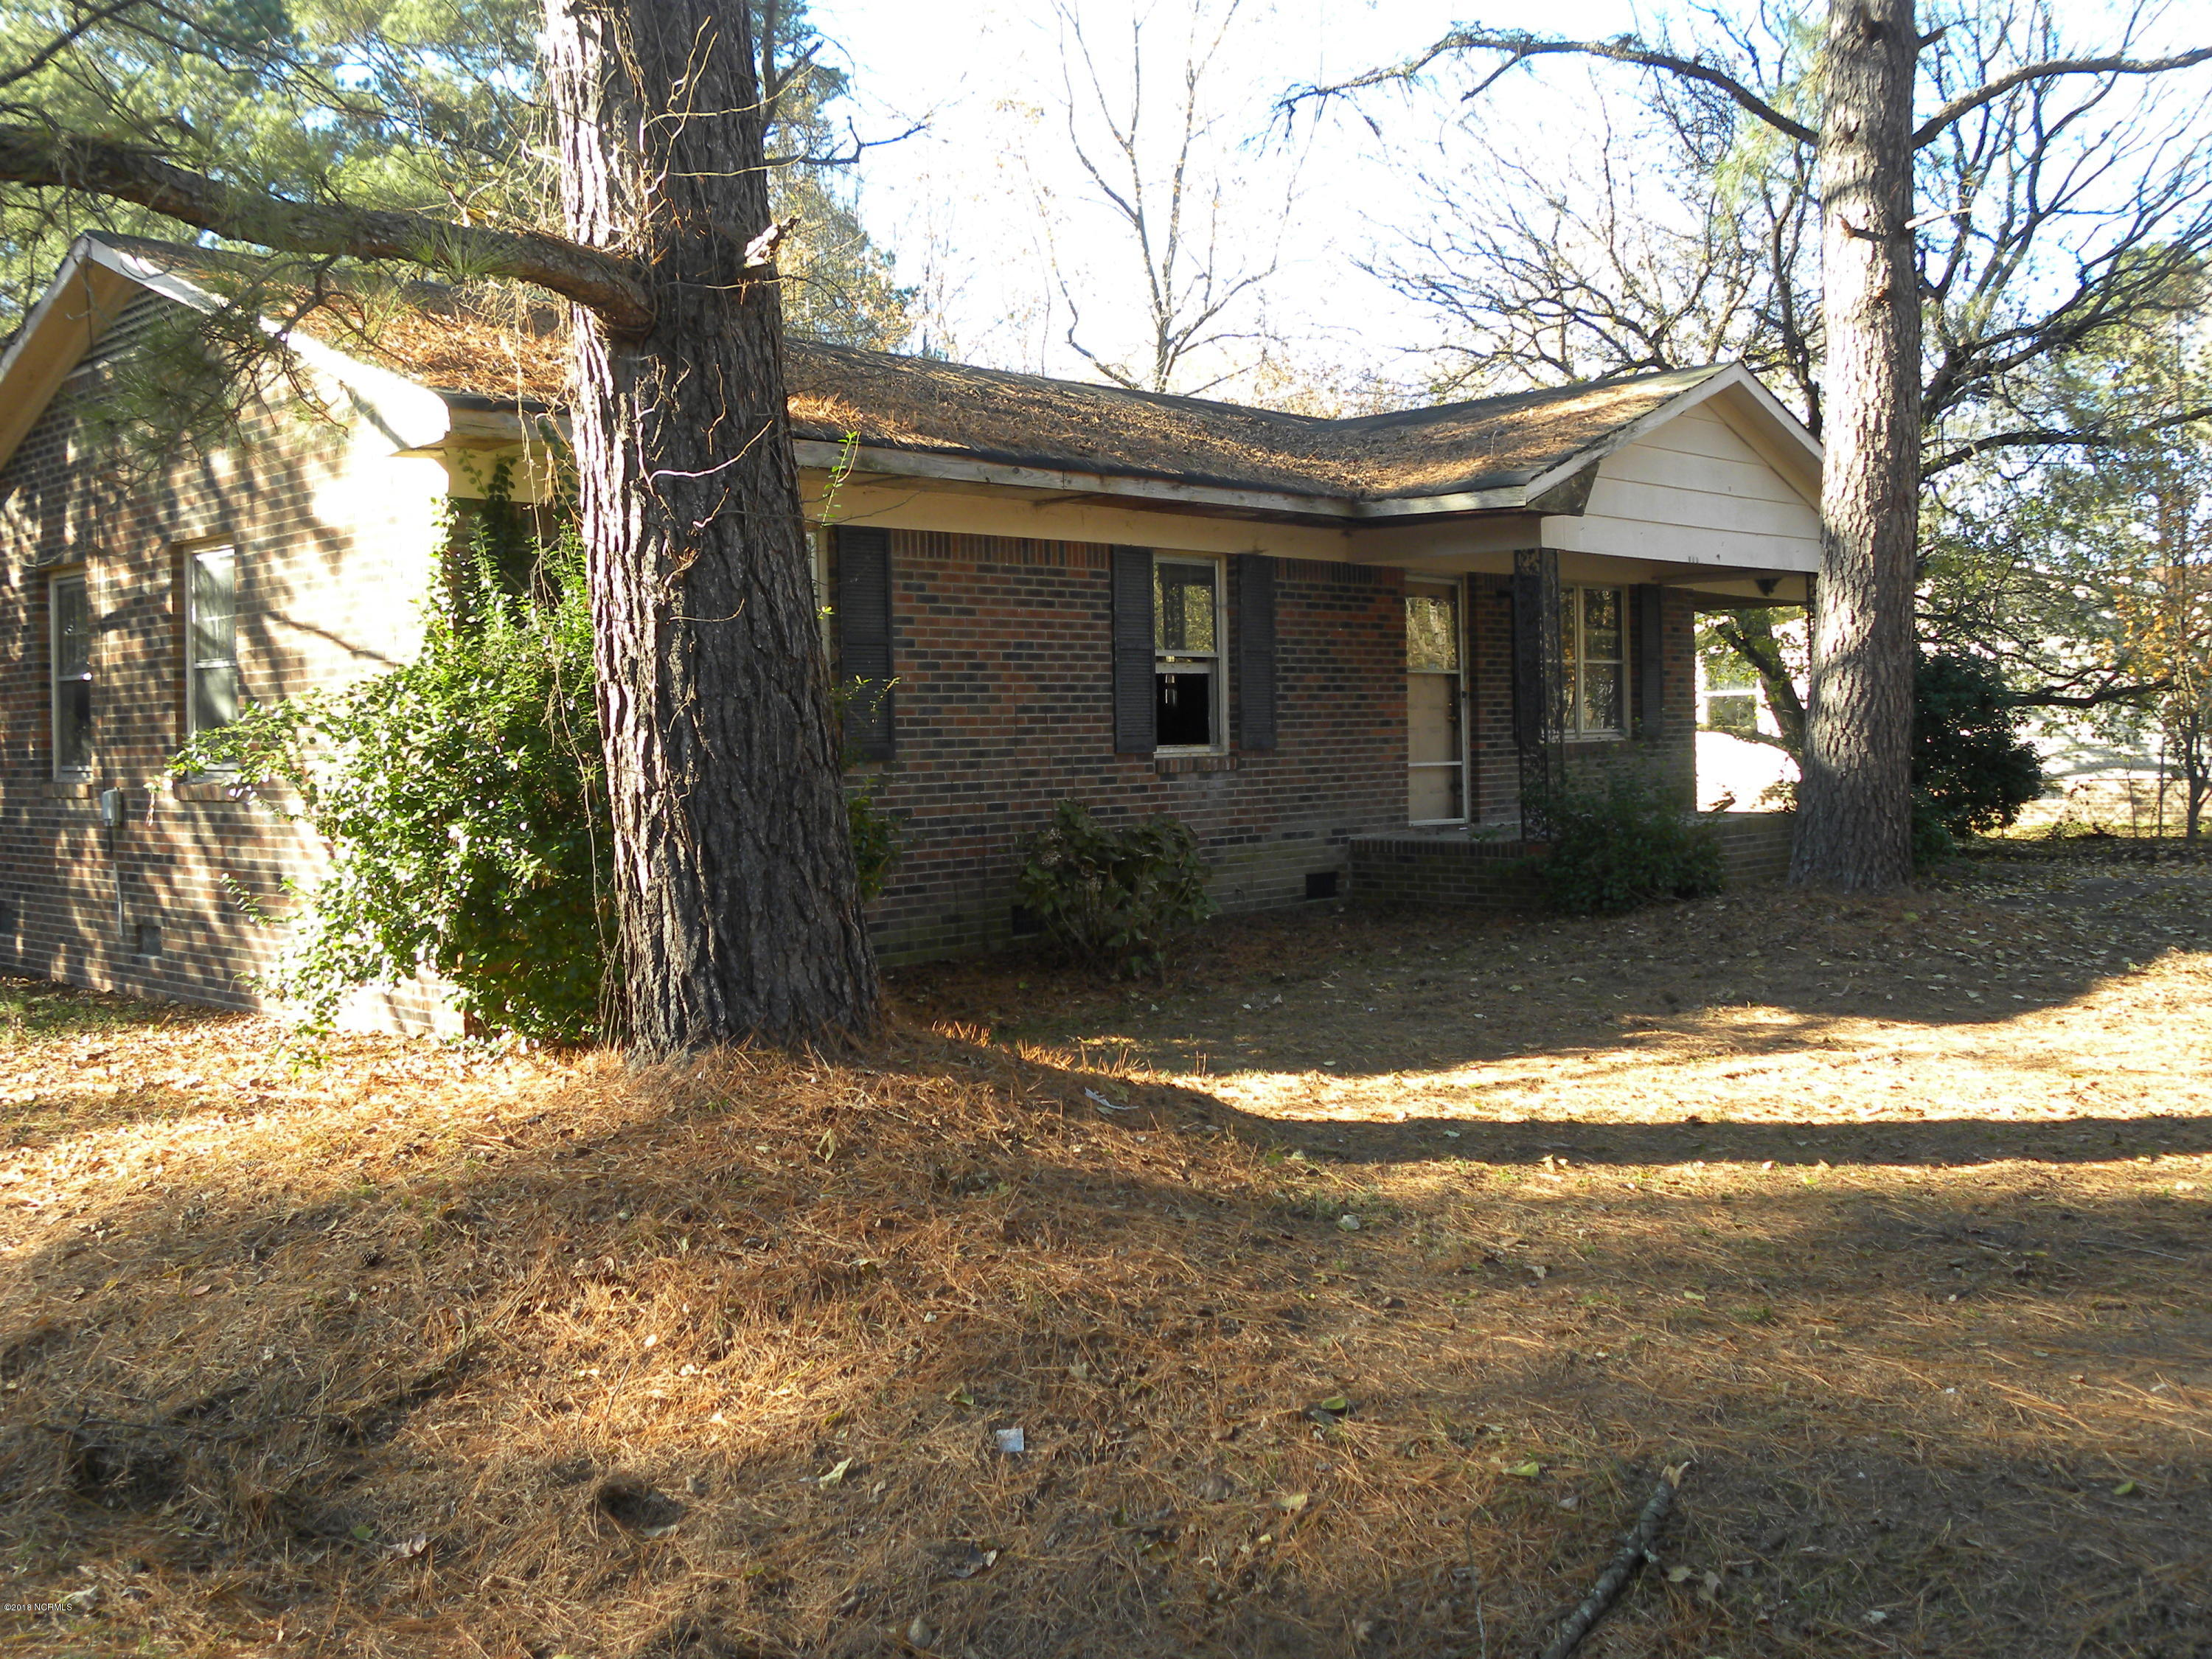 108 Snowden Street, Princeville, North Carolina, 3 Bedrooms Bedrooms, 5 Rooms Rooms,1 BathroomBathrooms,Single family residence,For sale,Snowden,100142503